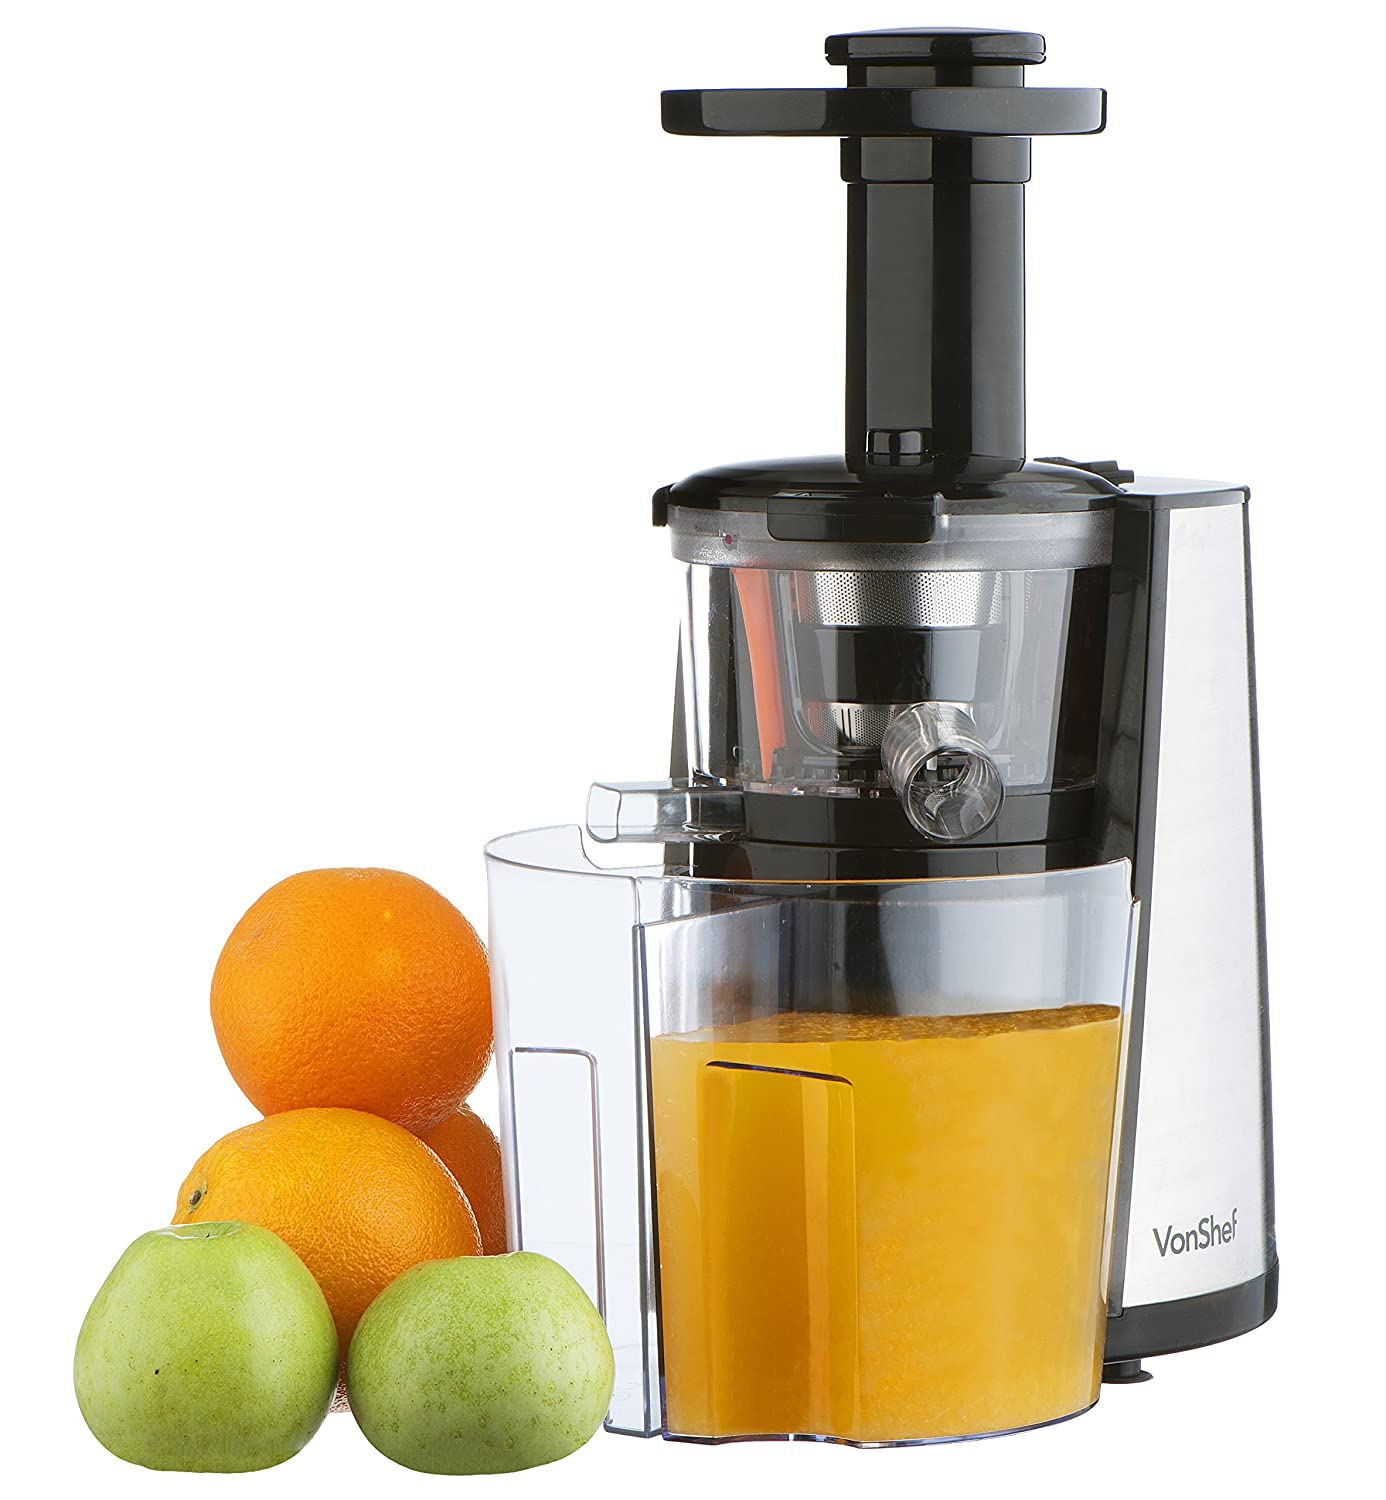 Best Masticating Juicer 2017 : Top 10 Best Masticating Juicers 2016-2017 on Flipboard